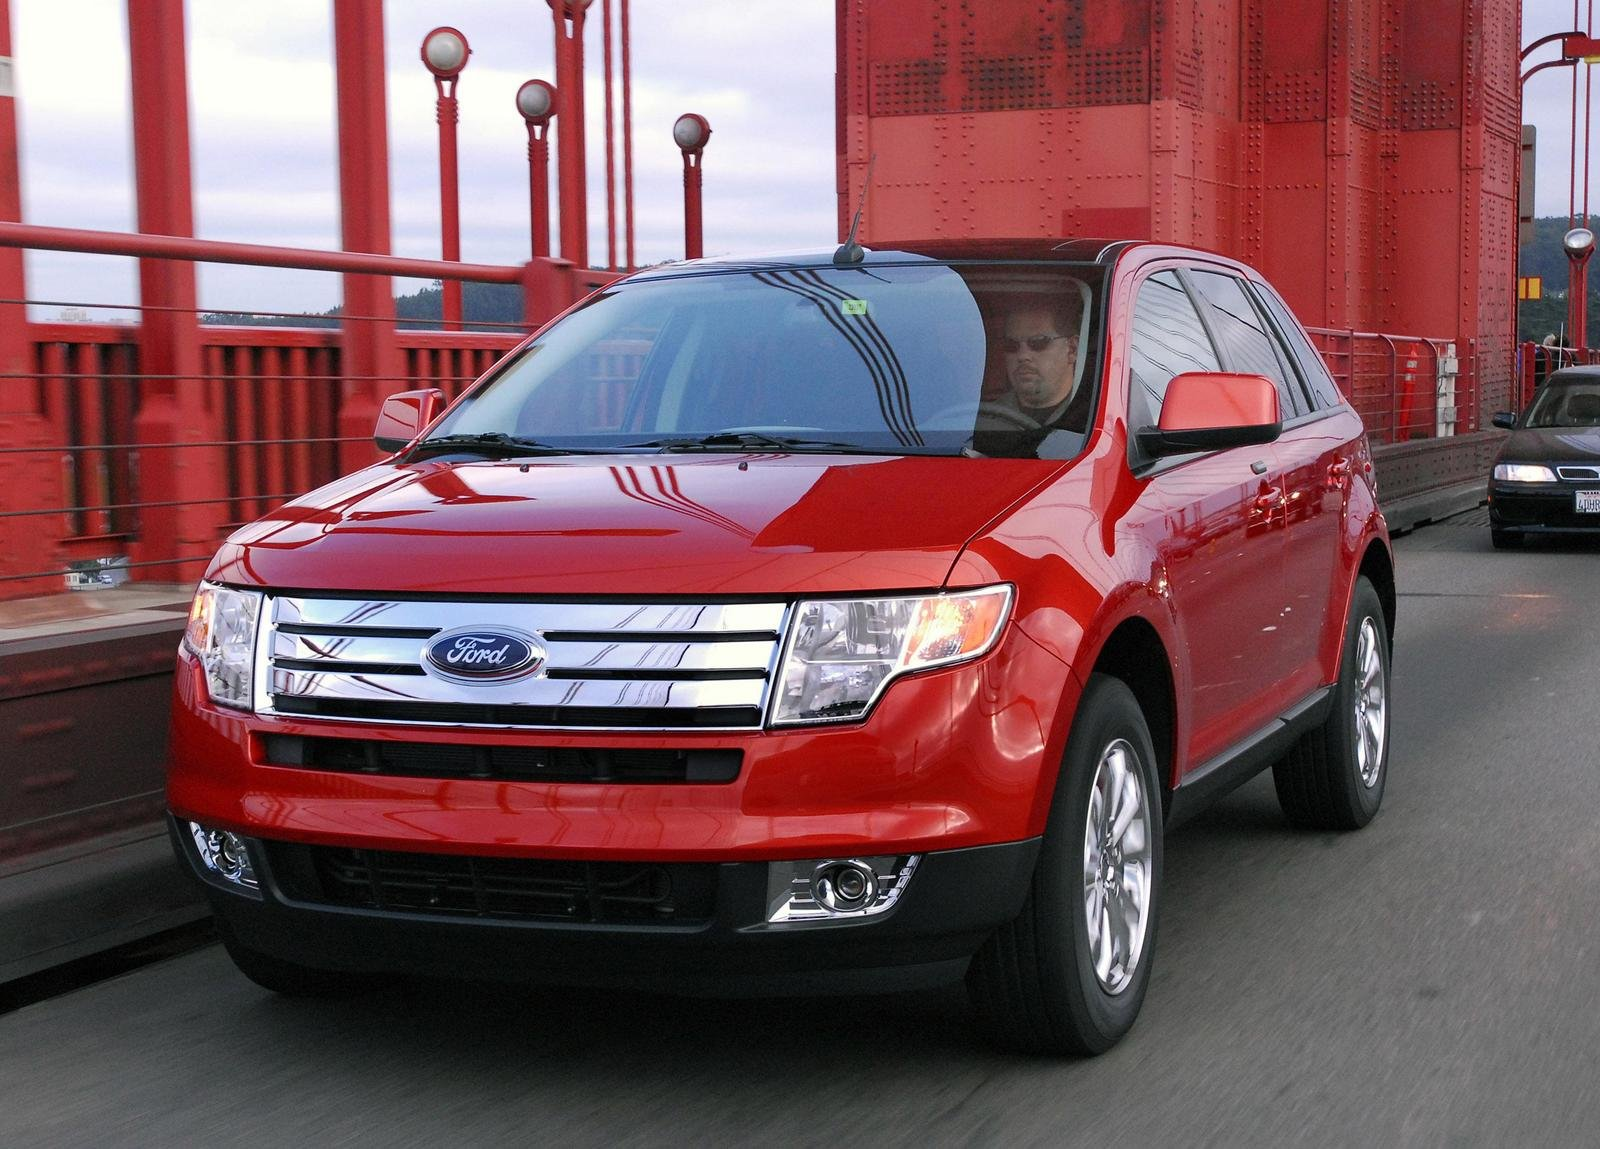 2007 ford edge picture 161930 car review top speed. Black Bedroom Furniture Sets. Home Design Ideas